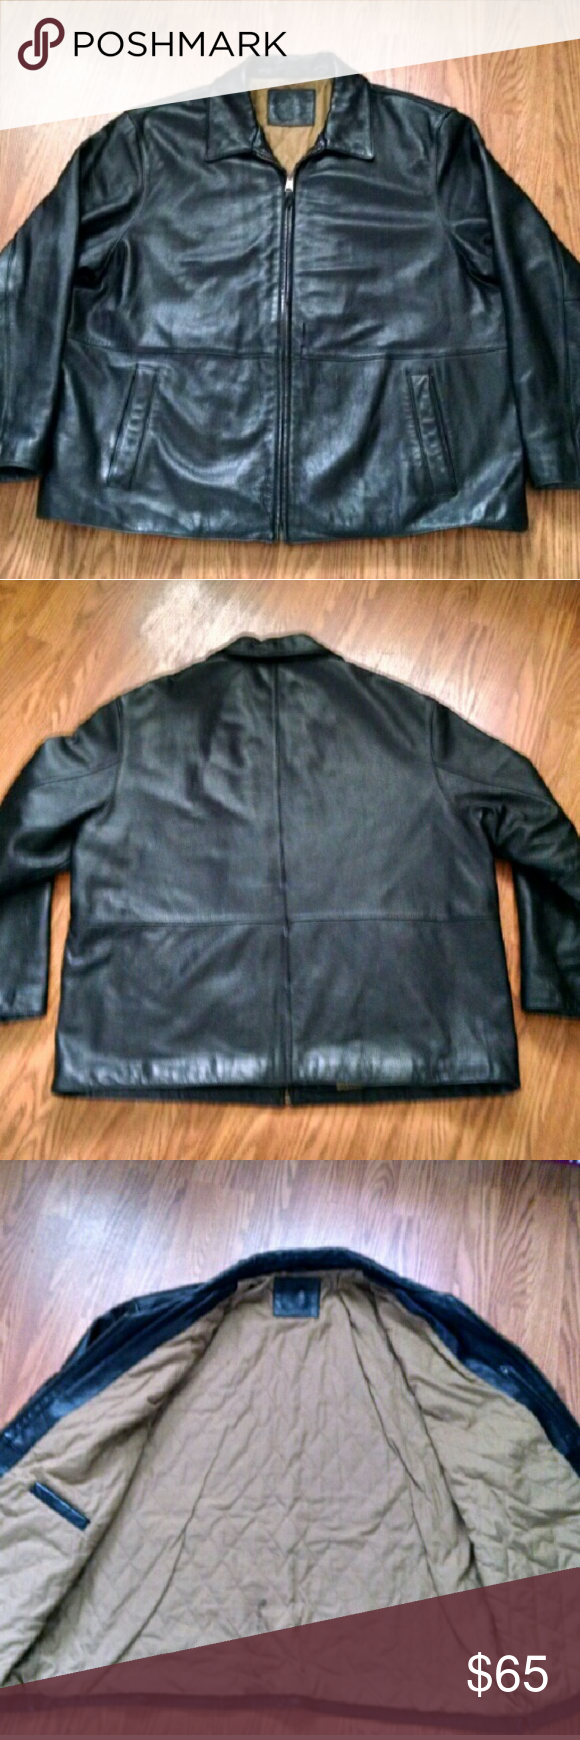 Mens Dockers Leather Coat Previously loved leather coat